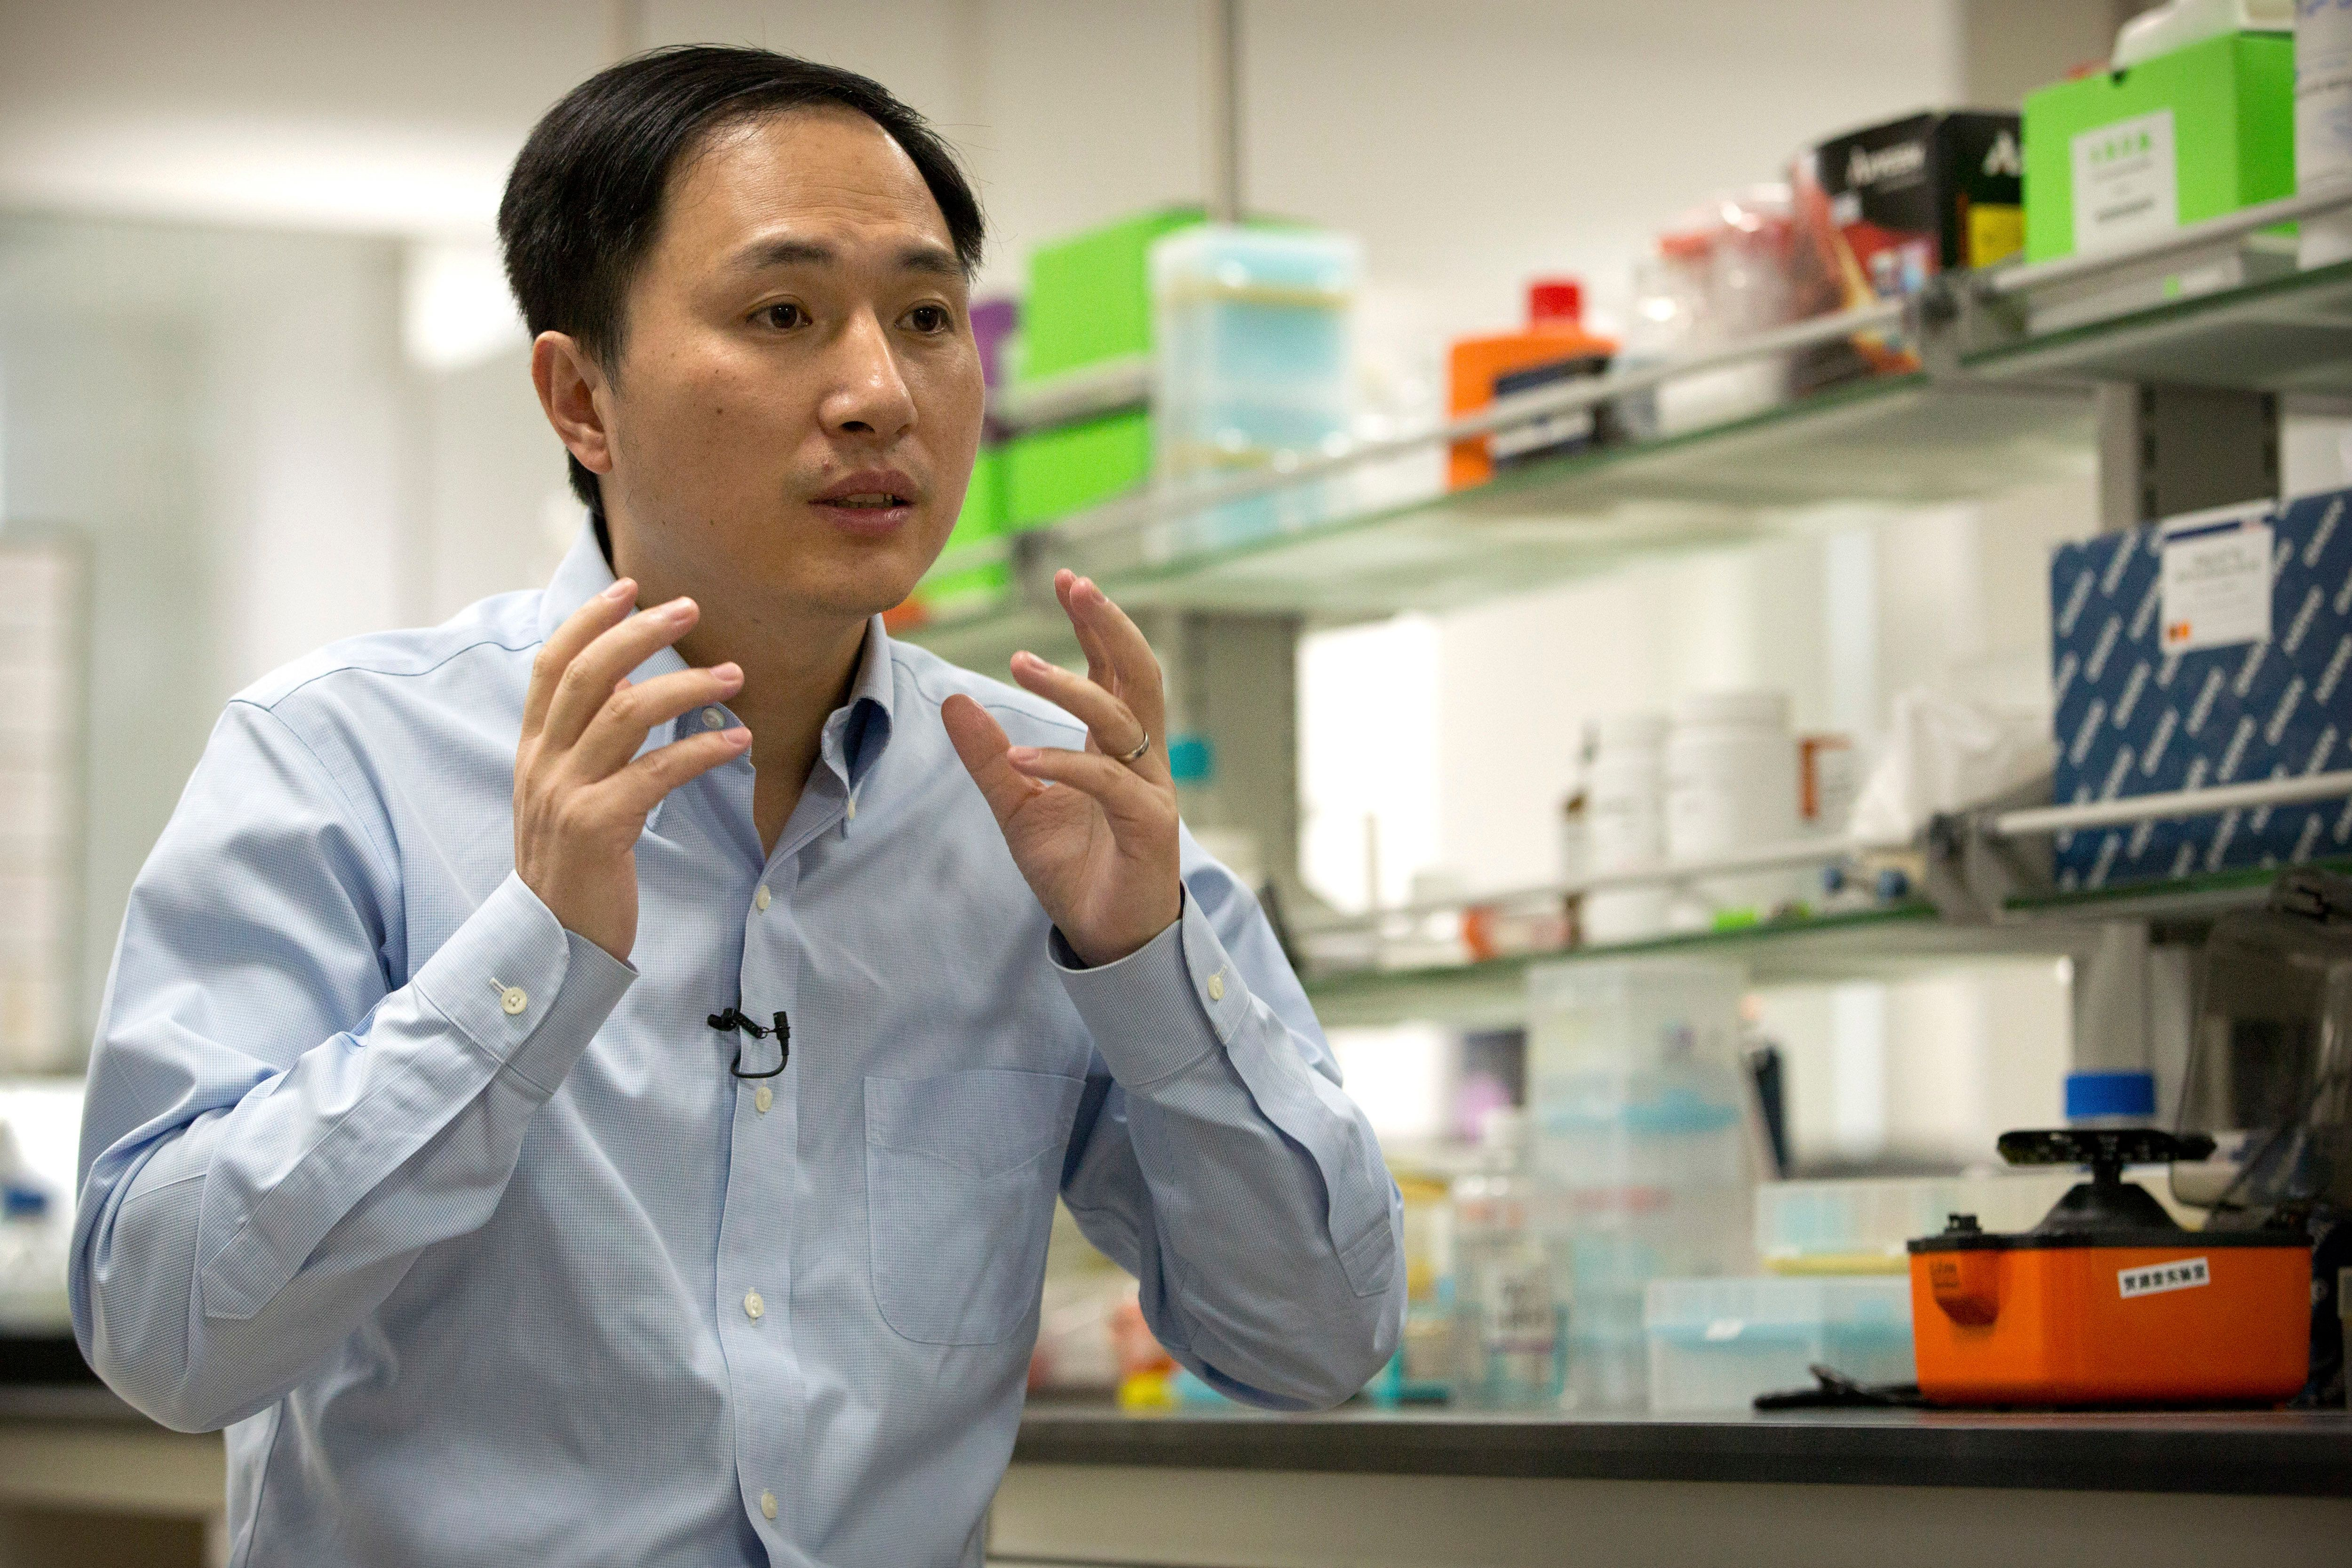 In this Oct. 10, 2018 photo, He Jiankui speaks during an interview at a laboratory in Shenzhen in southern China's Guangdong province. Chinese scientist He claims he helped make world's first genetically edited babies: twin girls whose DNA he said he altered. He revealed it Monday, Nov. 26, in Hong Kong to one of the organizers of an international conference on gene editing. (AP Photo/Mark Schiefelbein)